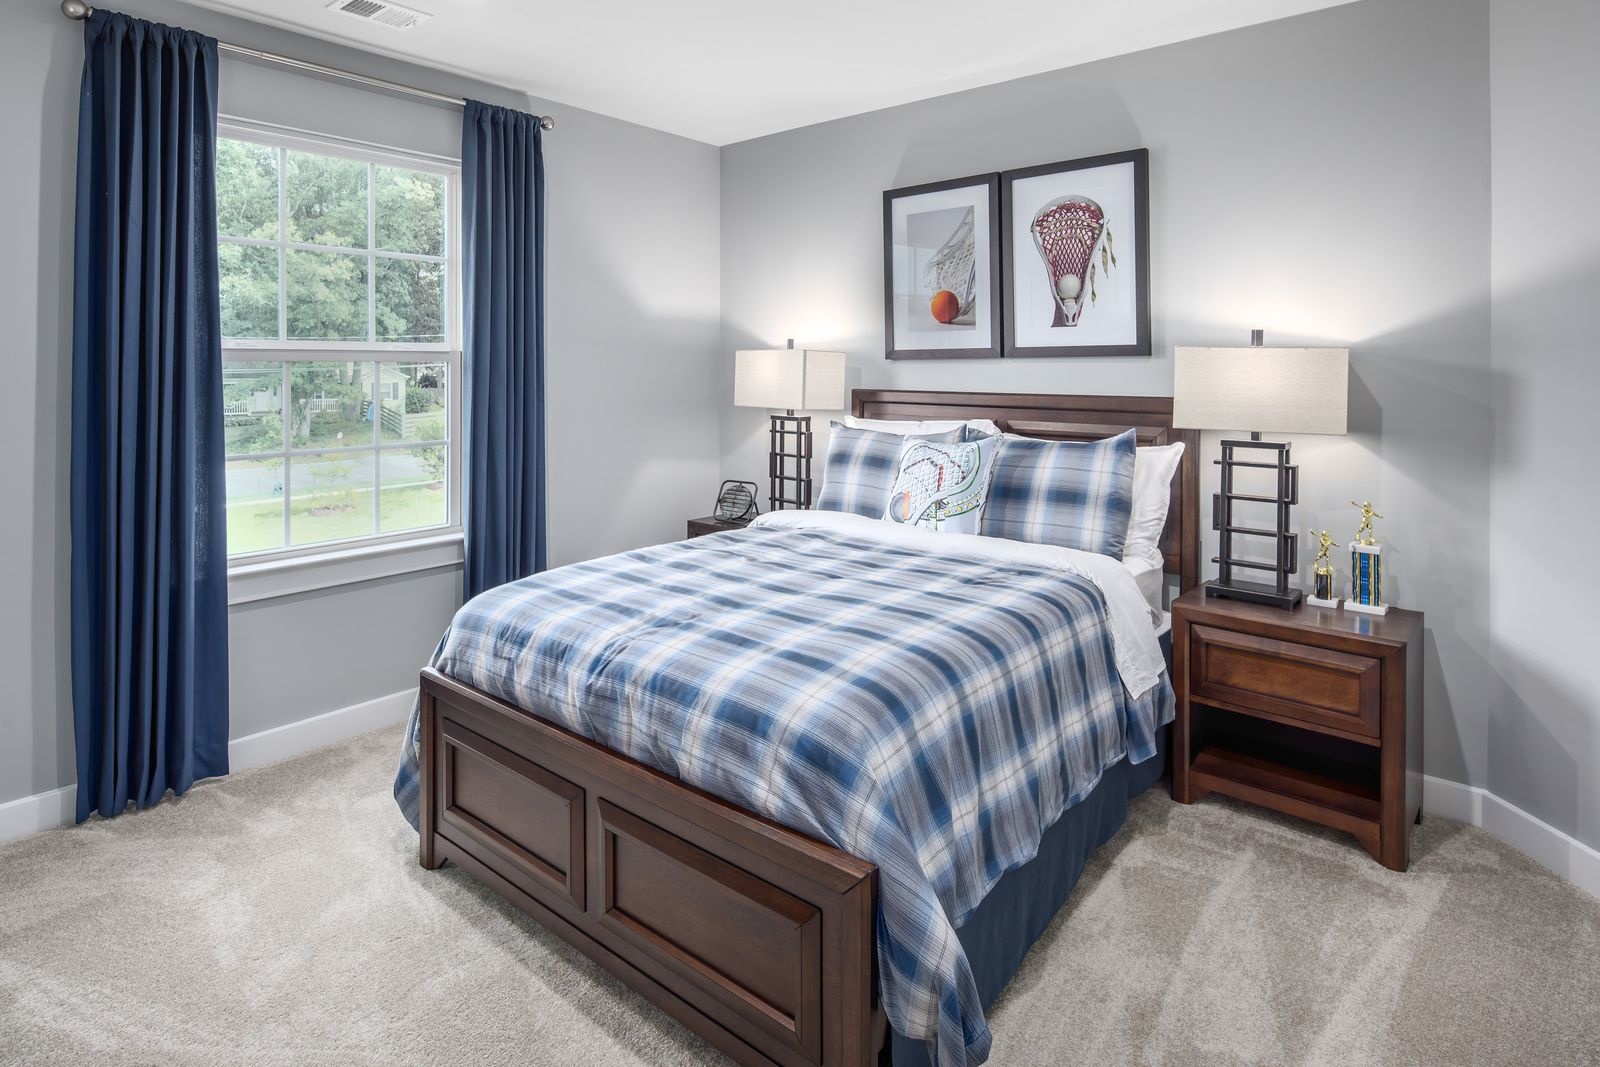 Bedroom featured in the Lehigh By Ryan Homes in Baltimore, MD